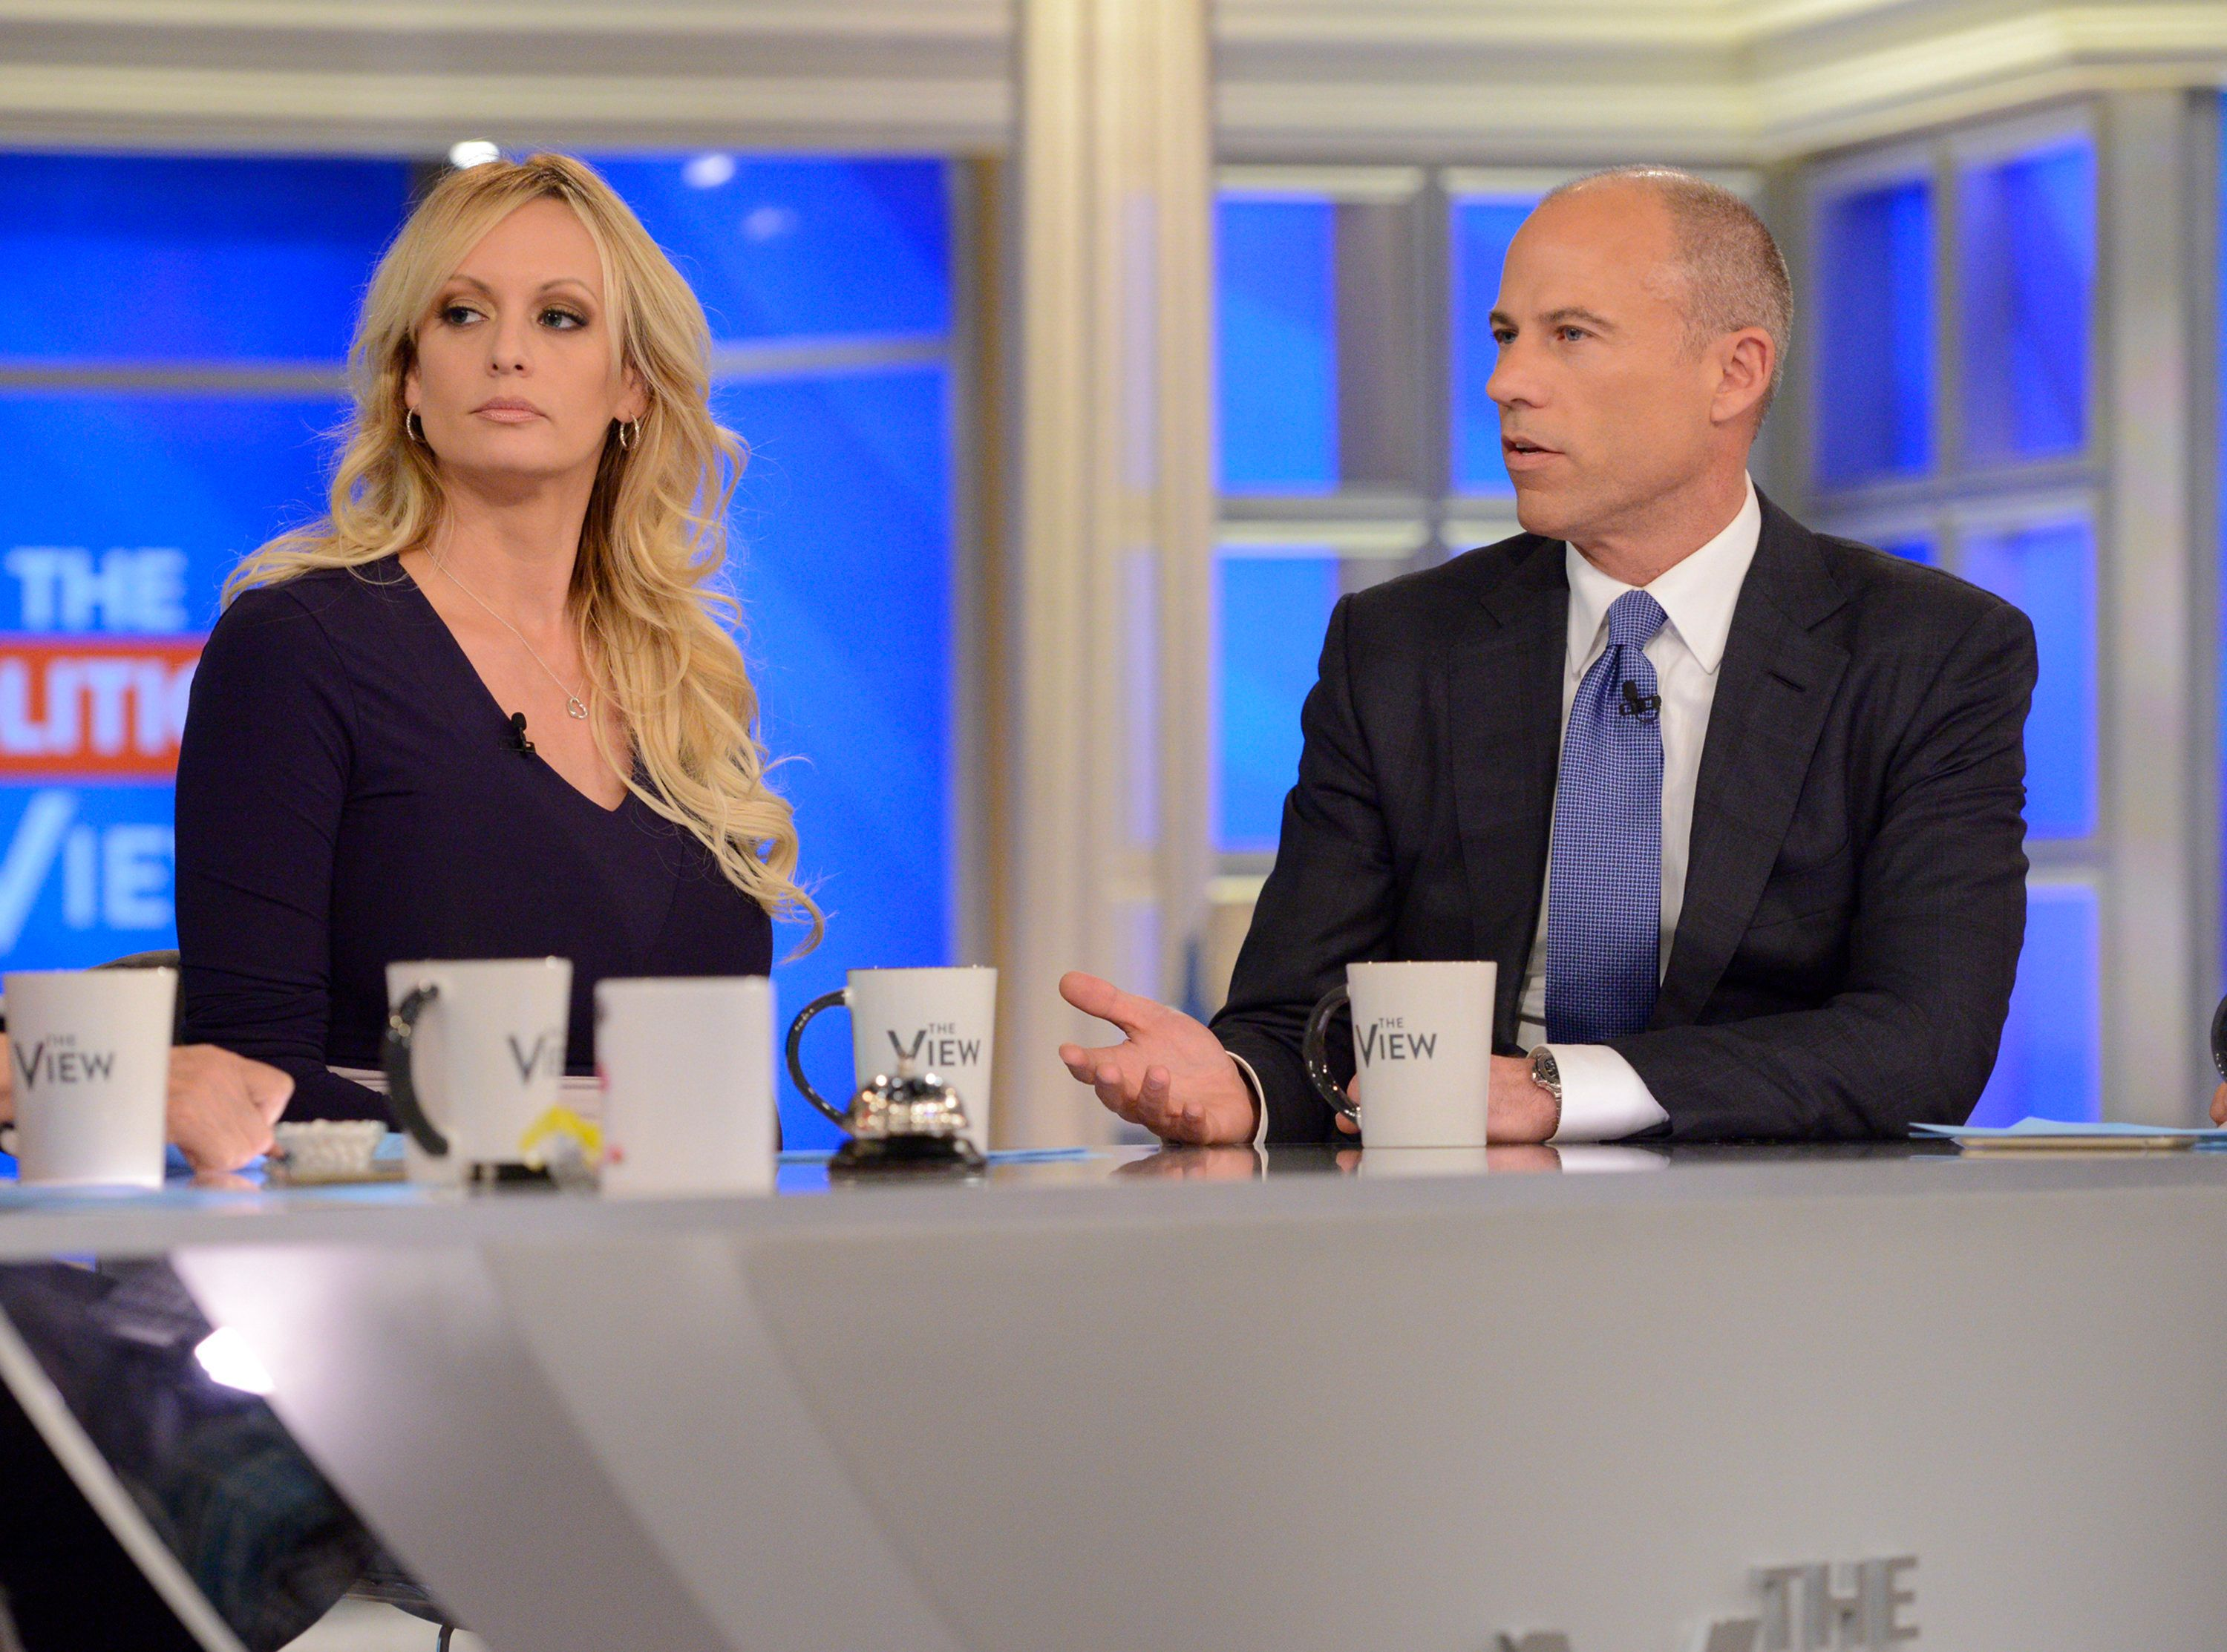 THE VIEW - Stormy Daniels is joined by her attorney, Michael Avenatti today, Wednesday, September 12, 2018 on ABC's 'The View.'  'The View' airs Monday-Friday (11:00 am-12:00 pm, ET) on the ABC Television Network.     (Photo by Lorenzo Bevilaqua/ABC via Getty Images)  STORMY DANIELS, MICHAEL AVENATTI